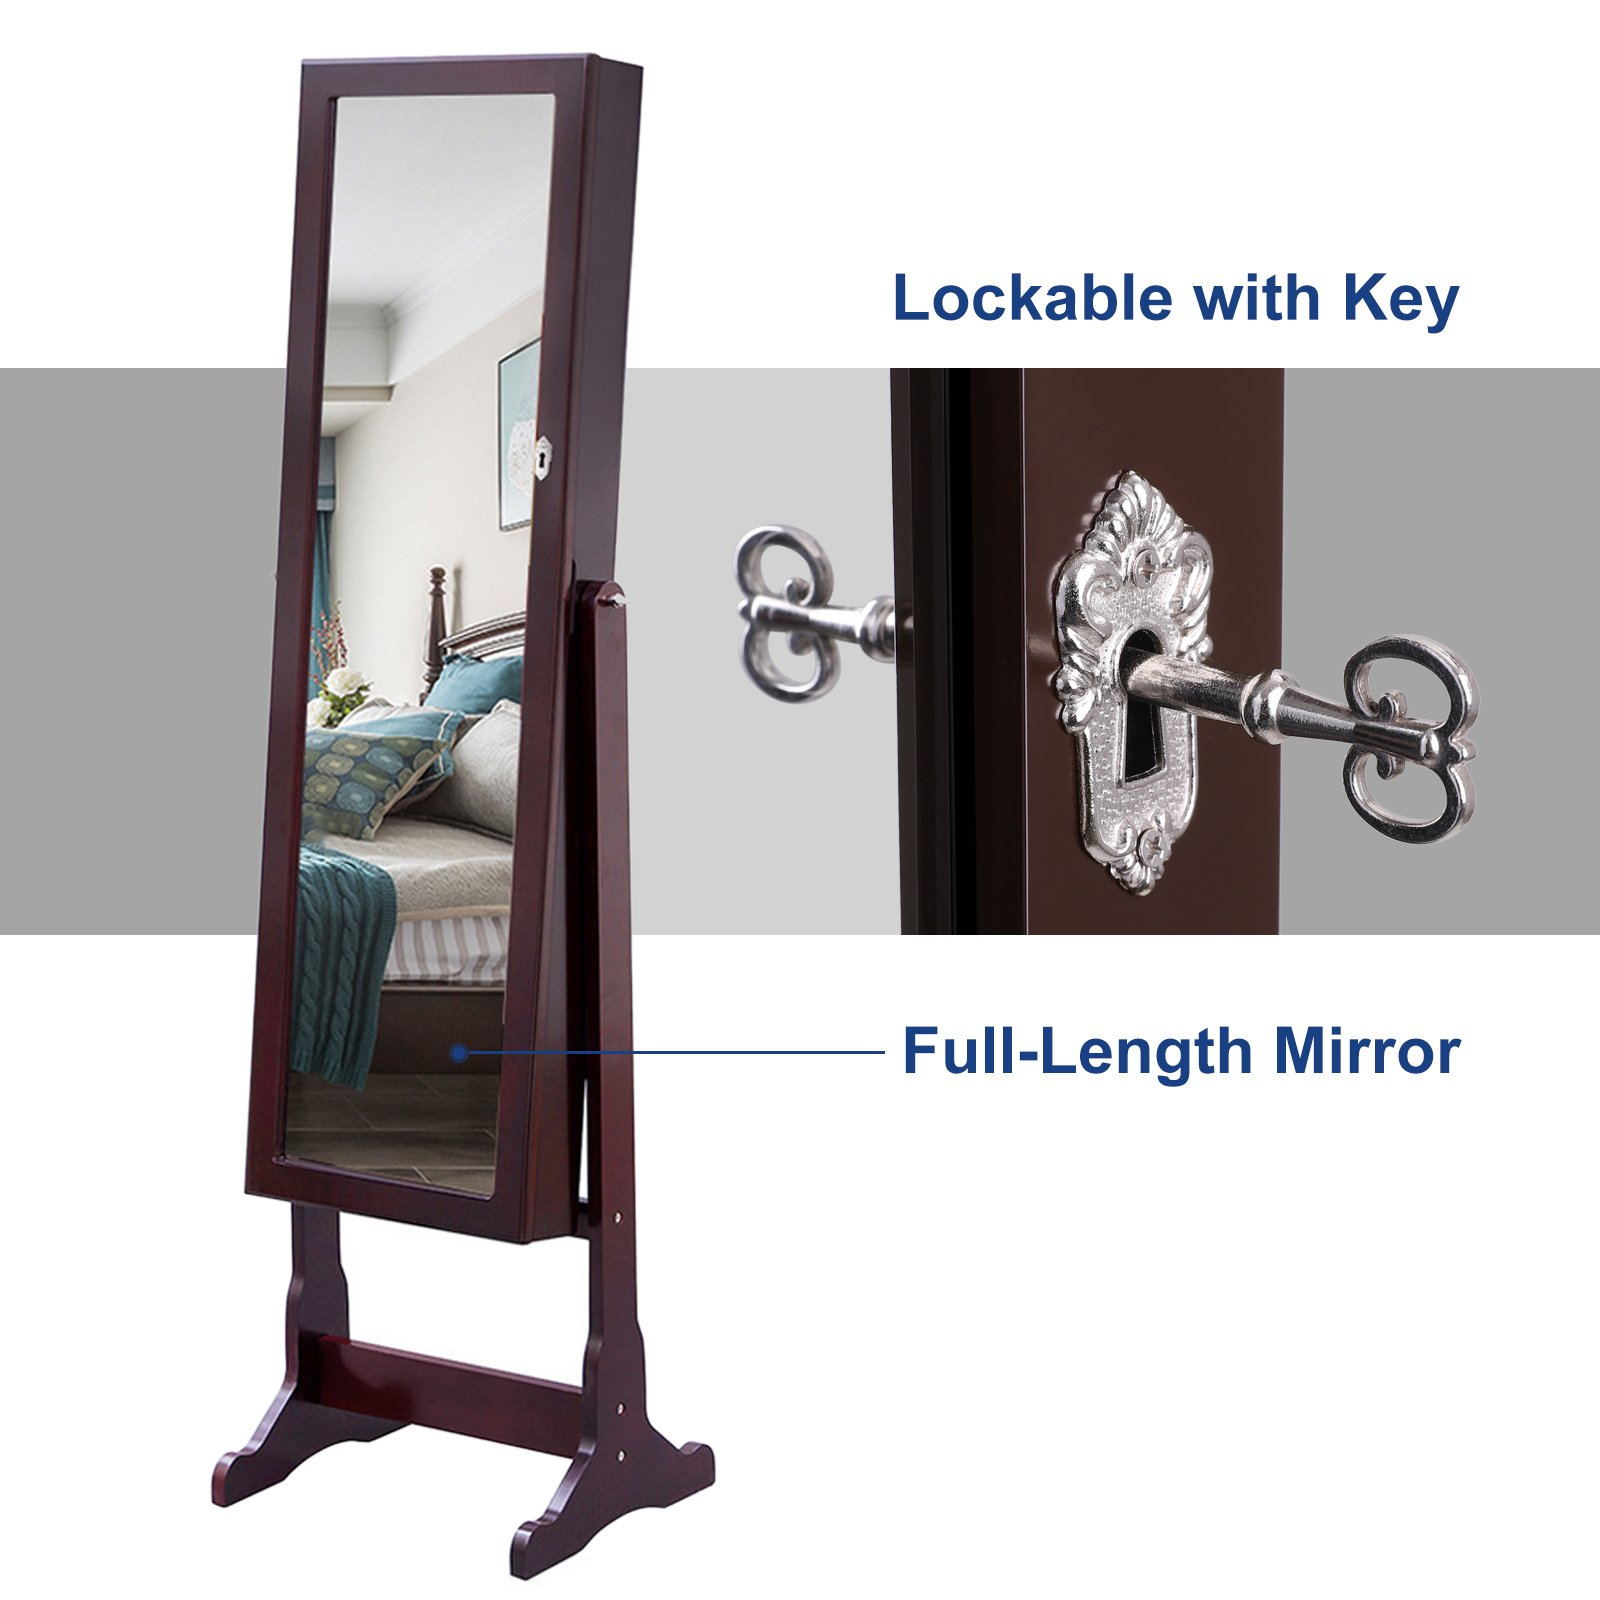 SONGMICS 6 LEDs Mirror Jewelry Cabinet Lockable Standing Mirrored Jewelry Armoire Organizer 2 Drawers Brown Mother's Day Gift UJJC94K by SONGMICS (Image #9)